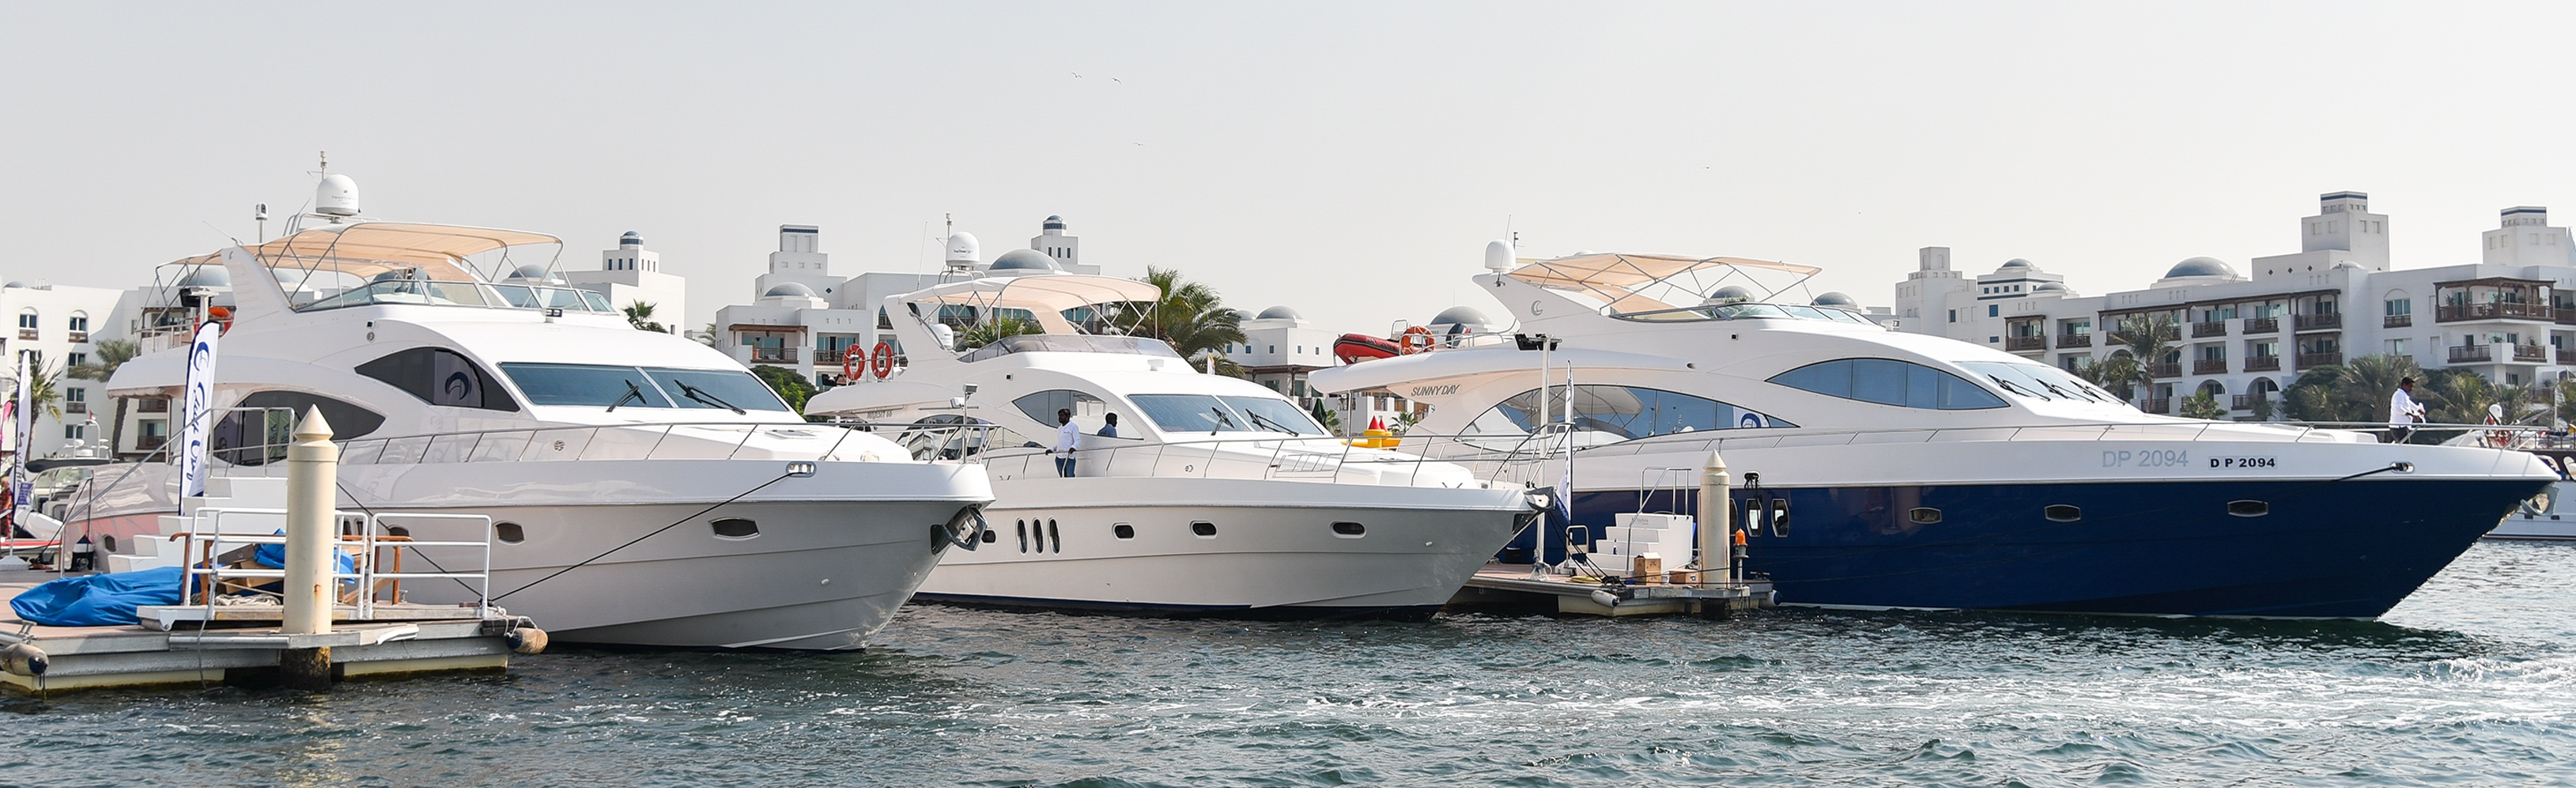 Gulf-Craft,-Pre-owned-Boat-Show-2017.jpg